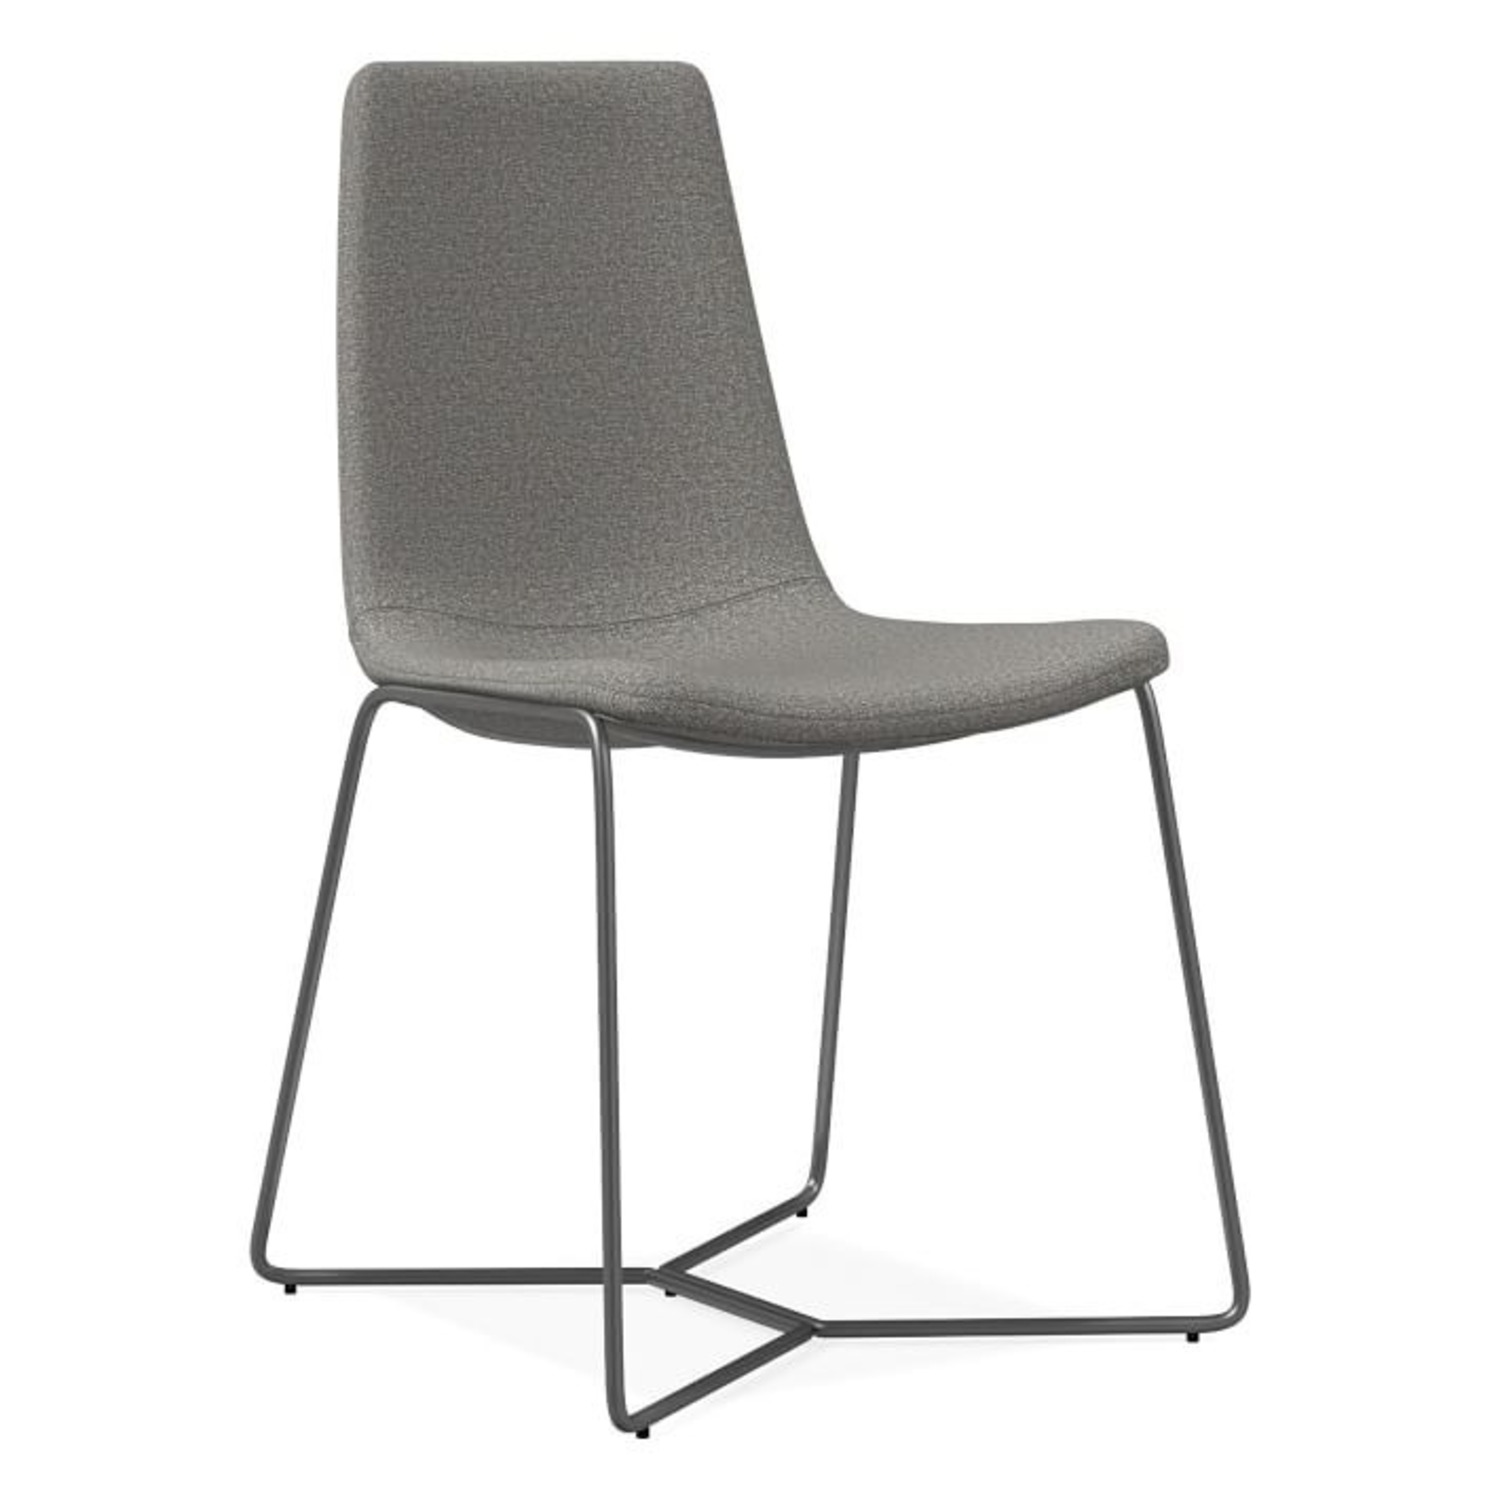 West Elm Slope Upholstered Dining Chair - image-3